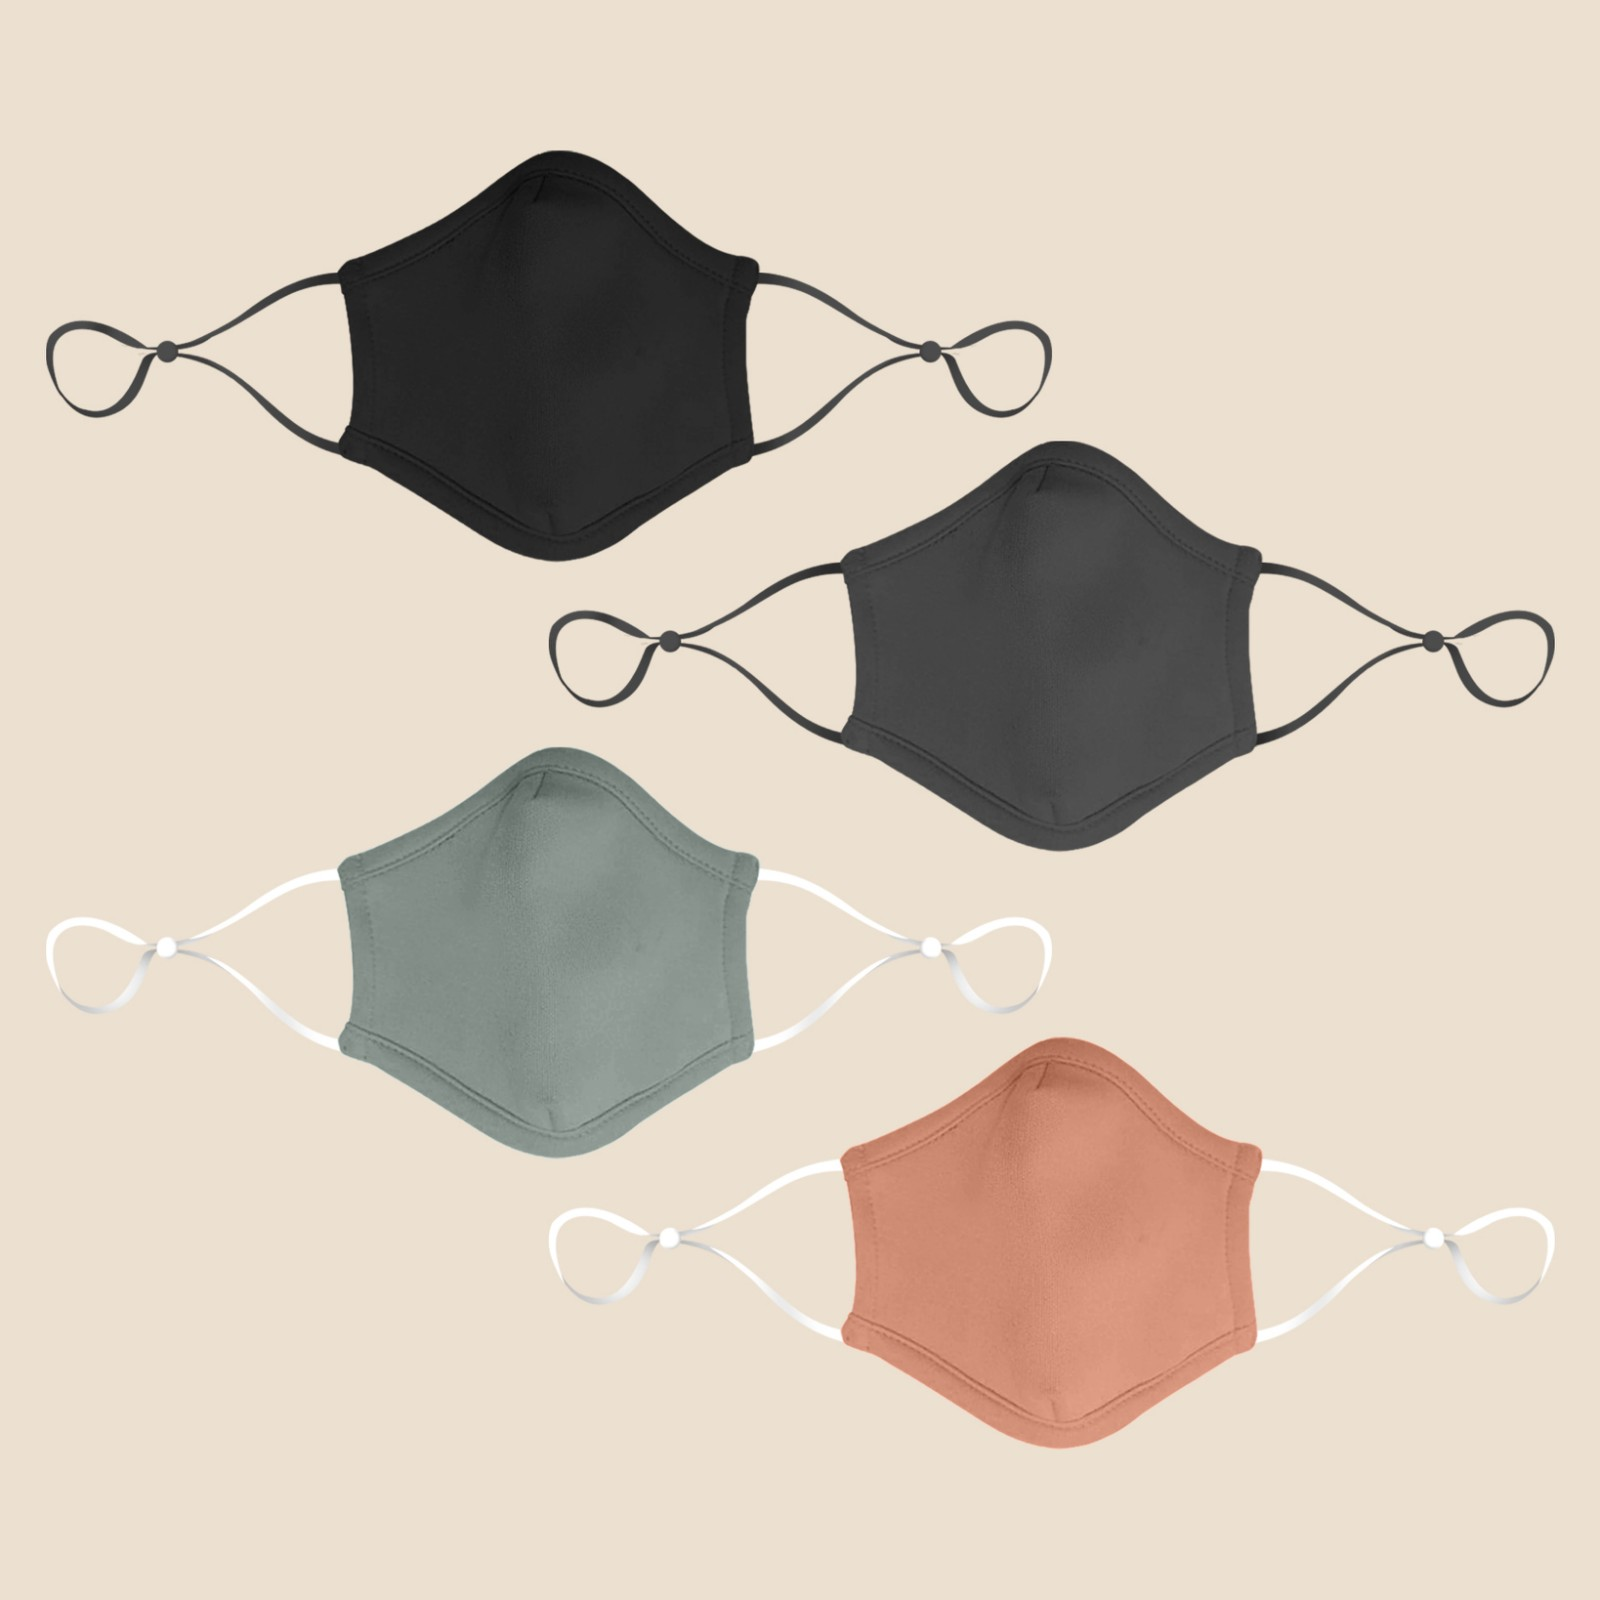 Water Repellant Washable Face Mask with Adjustable Ear loop